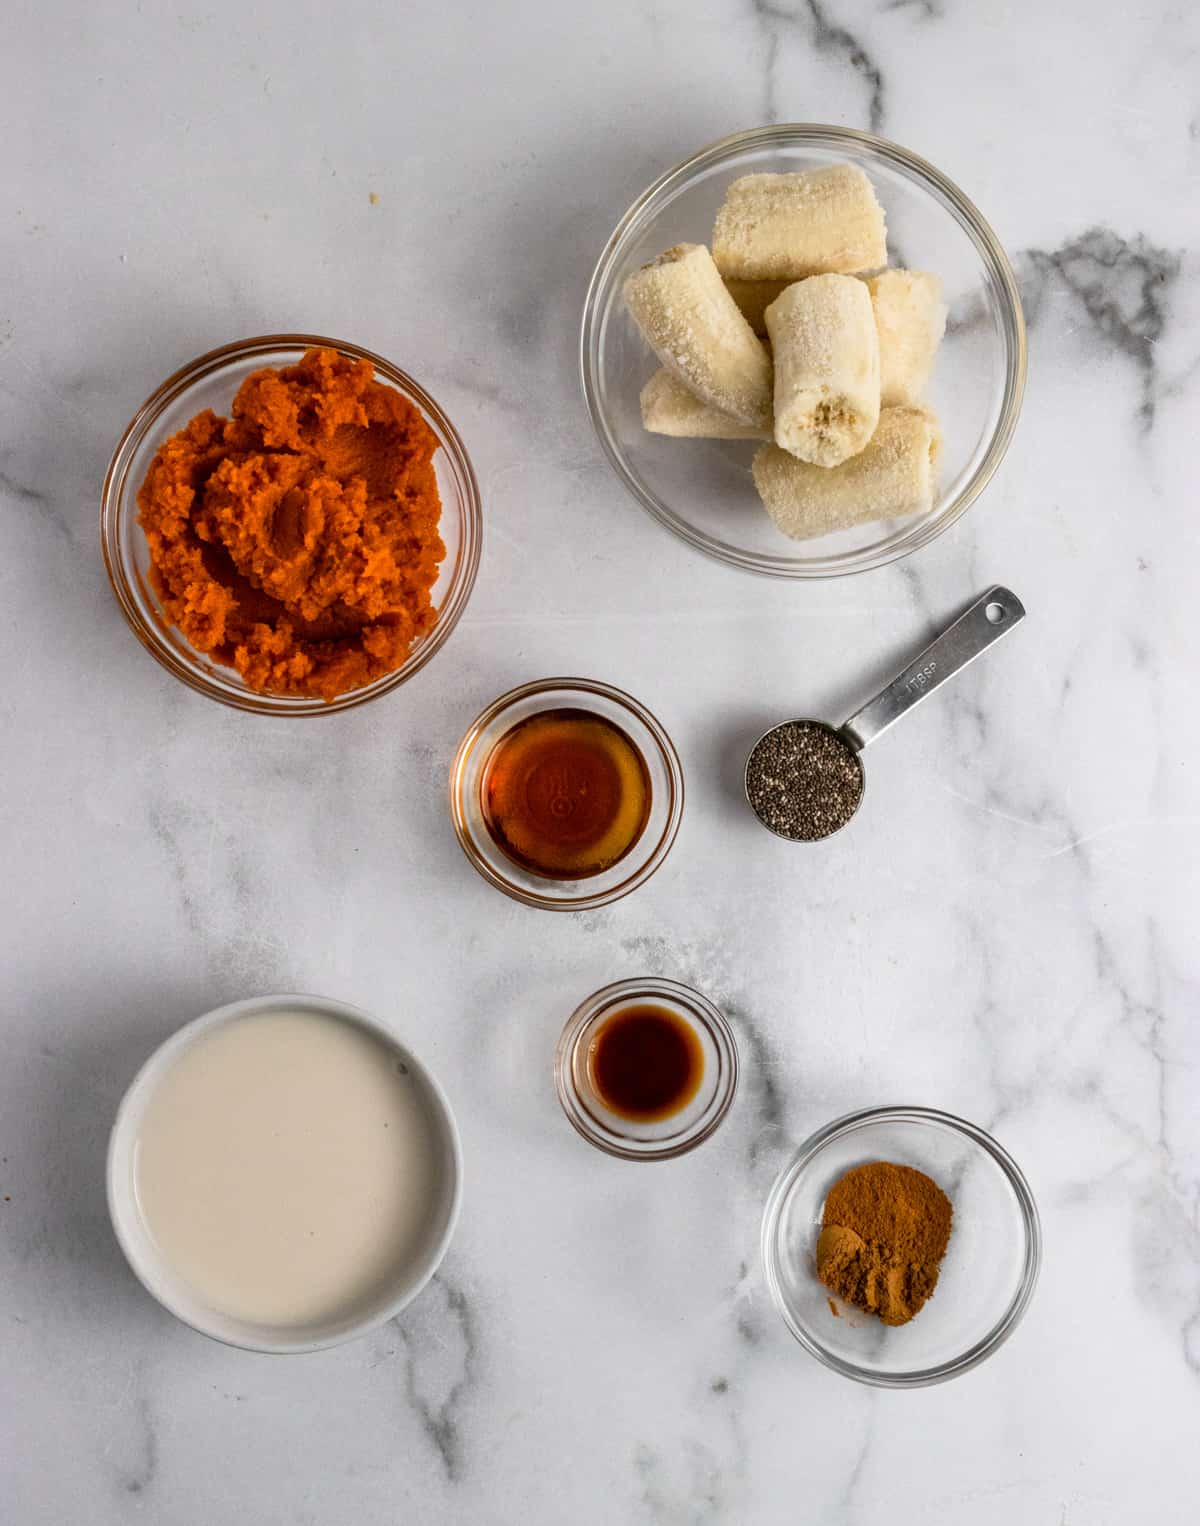 Recipe ingredients on counter.